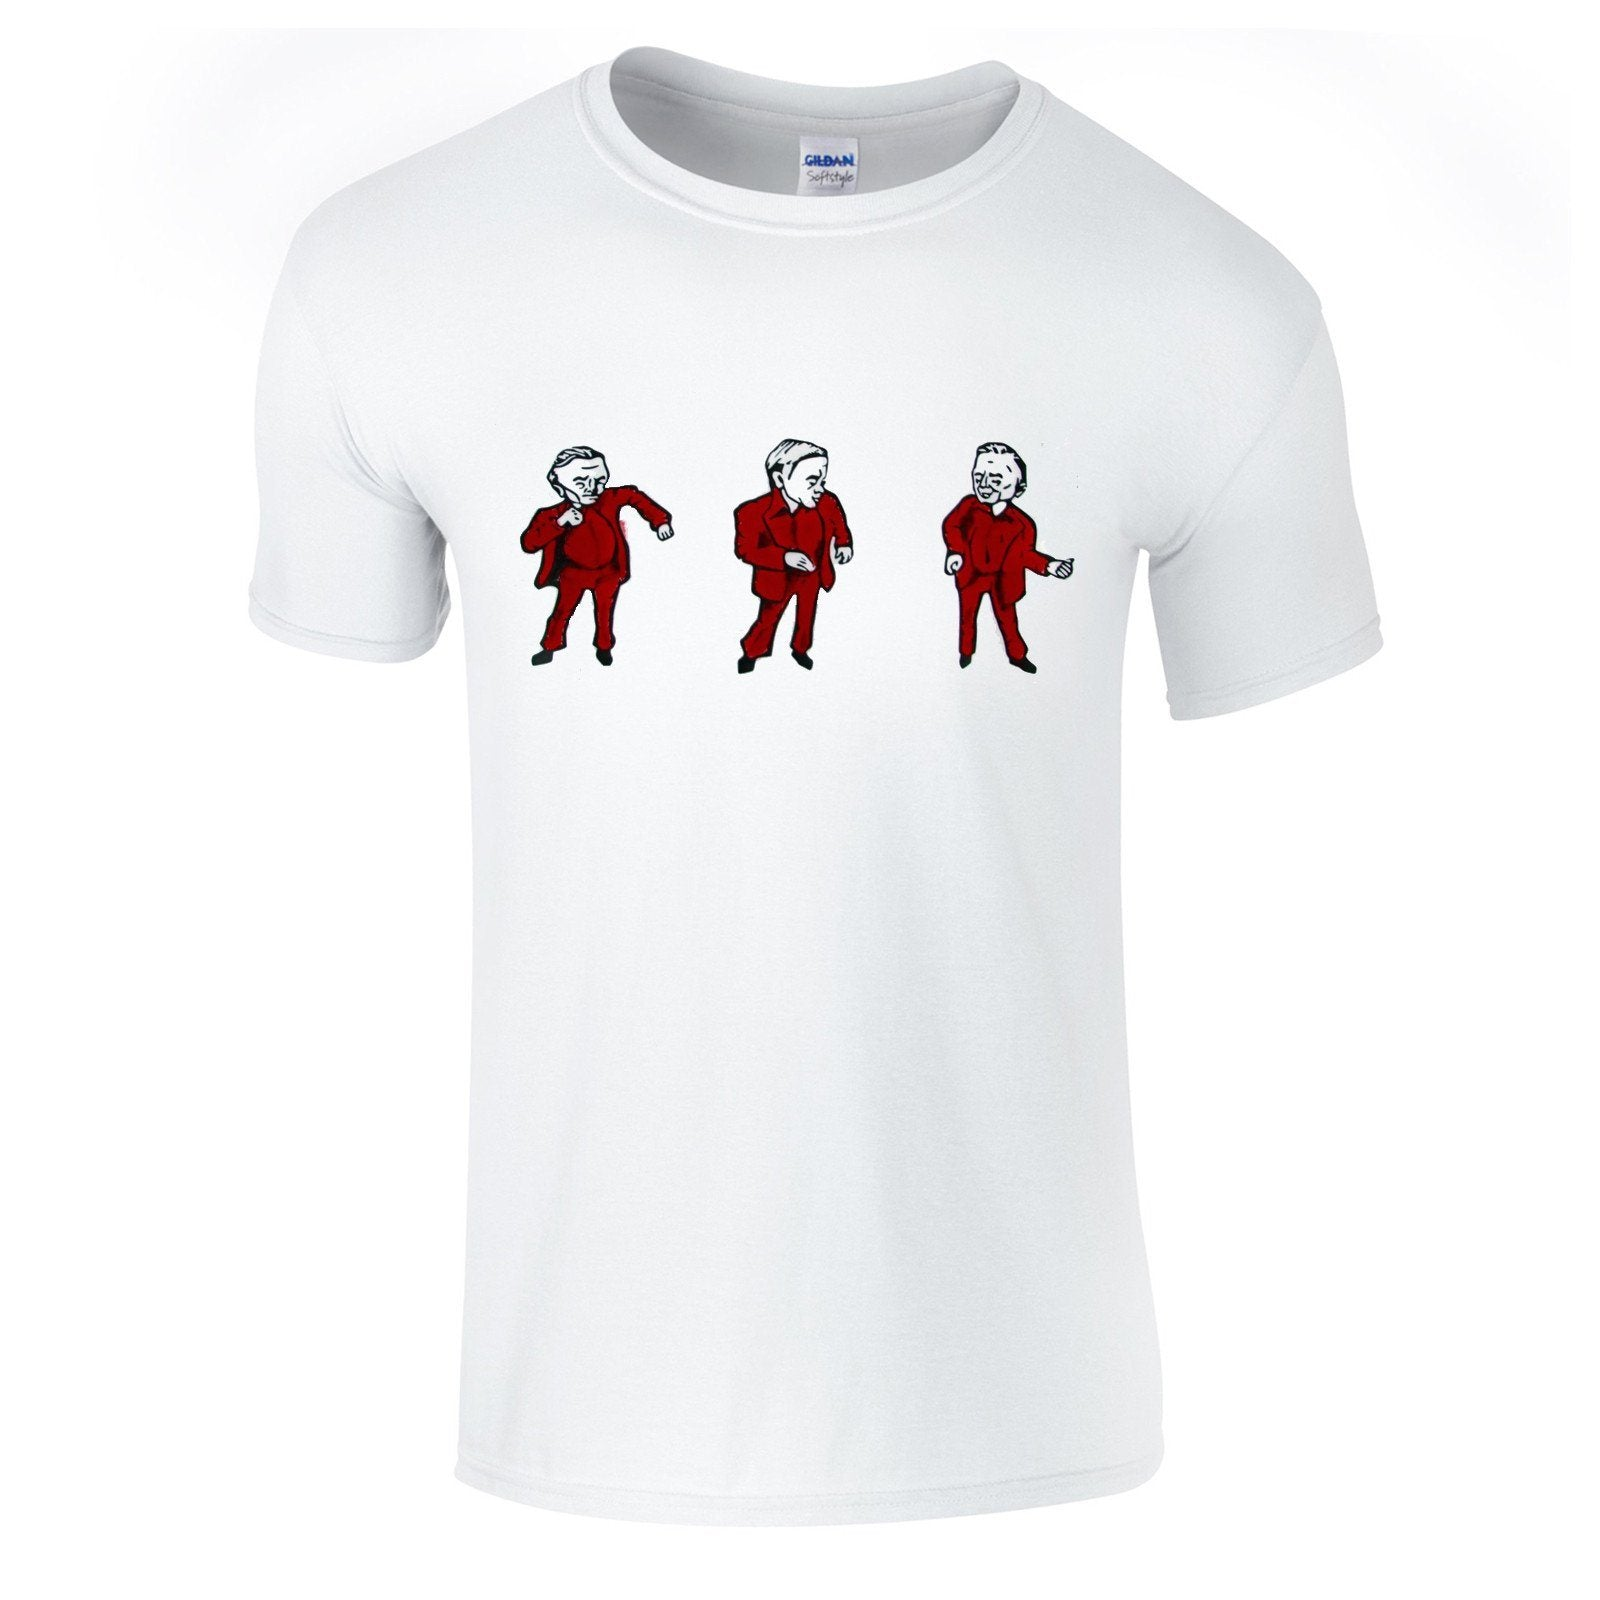 T-shirts - The Man From Another Place T-shirt